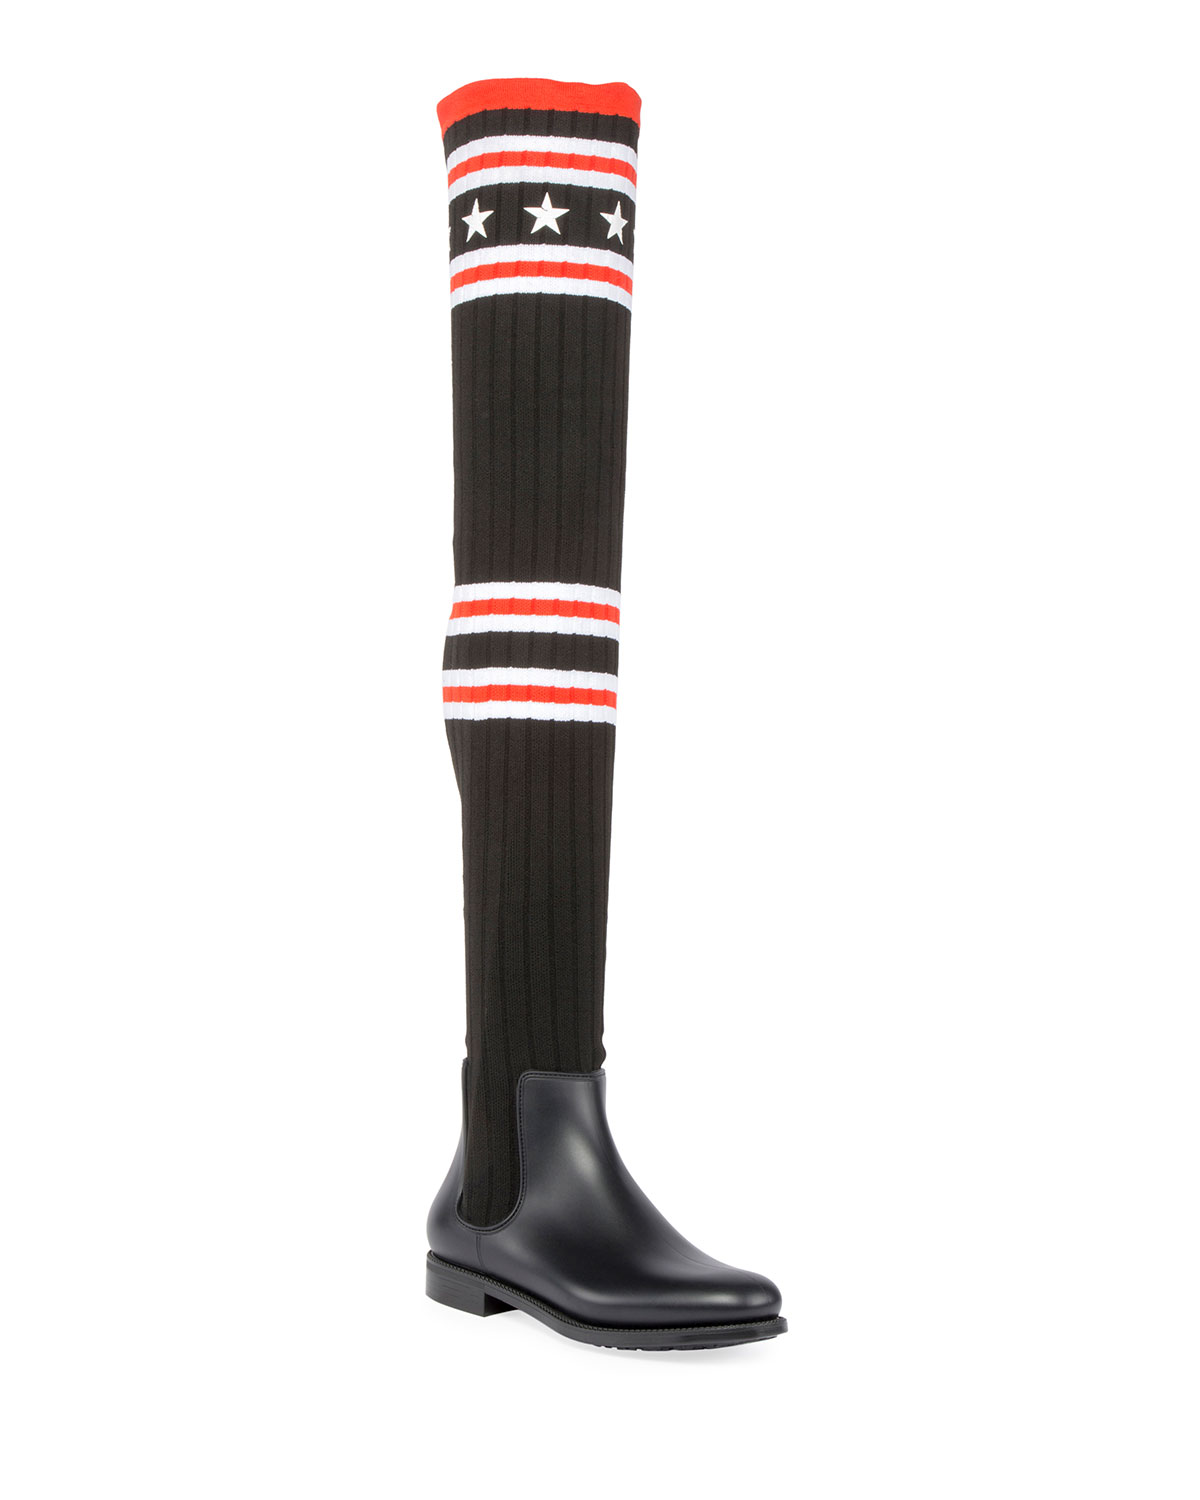 364d322c5 Givenchy Over-the-Knee Rubber Sock Boot